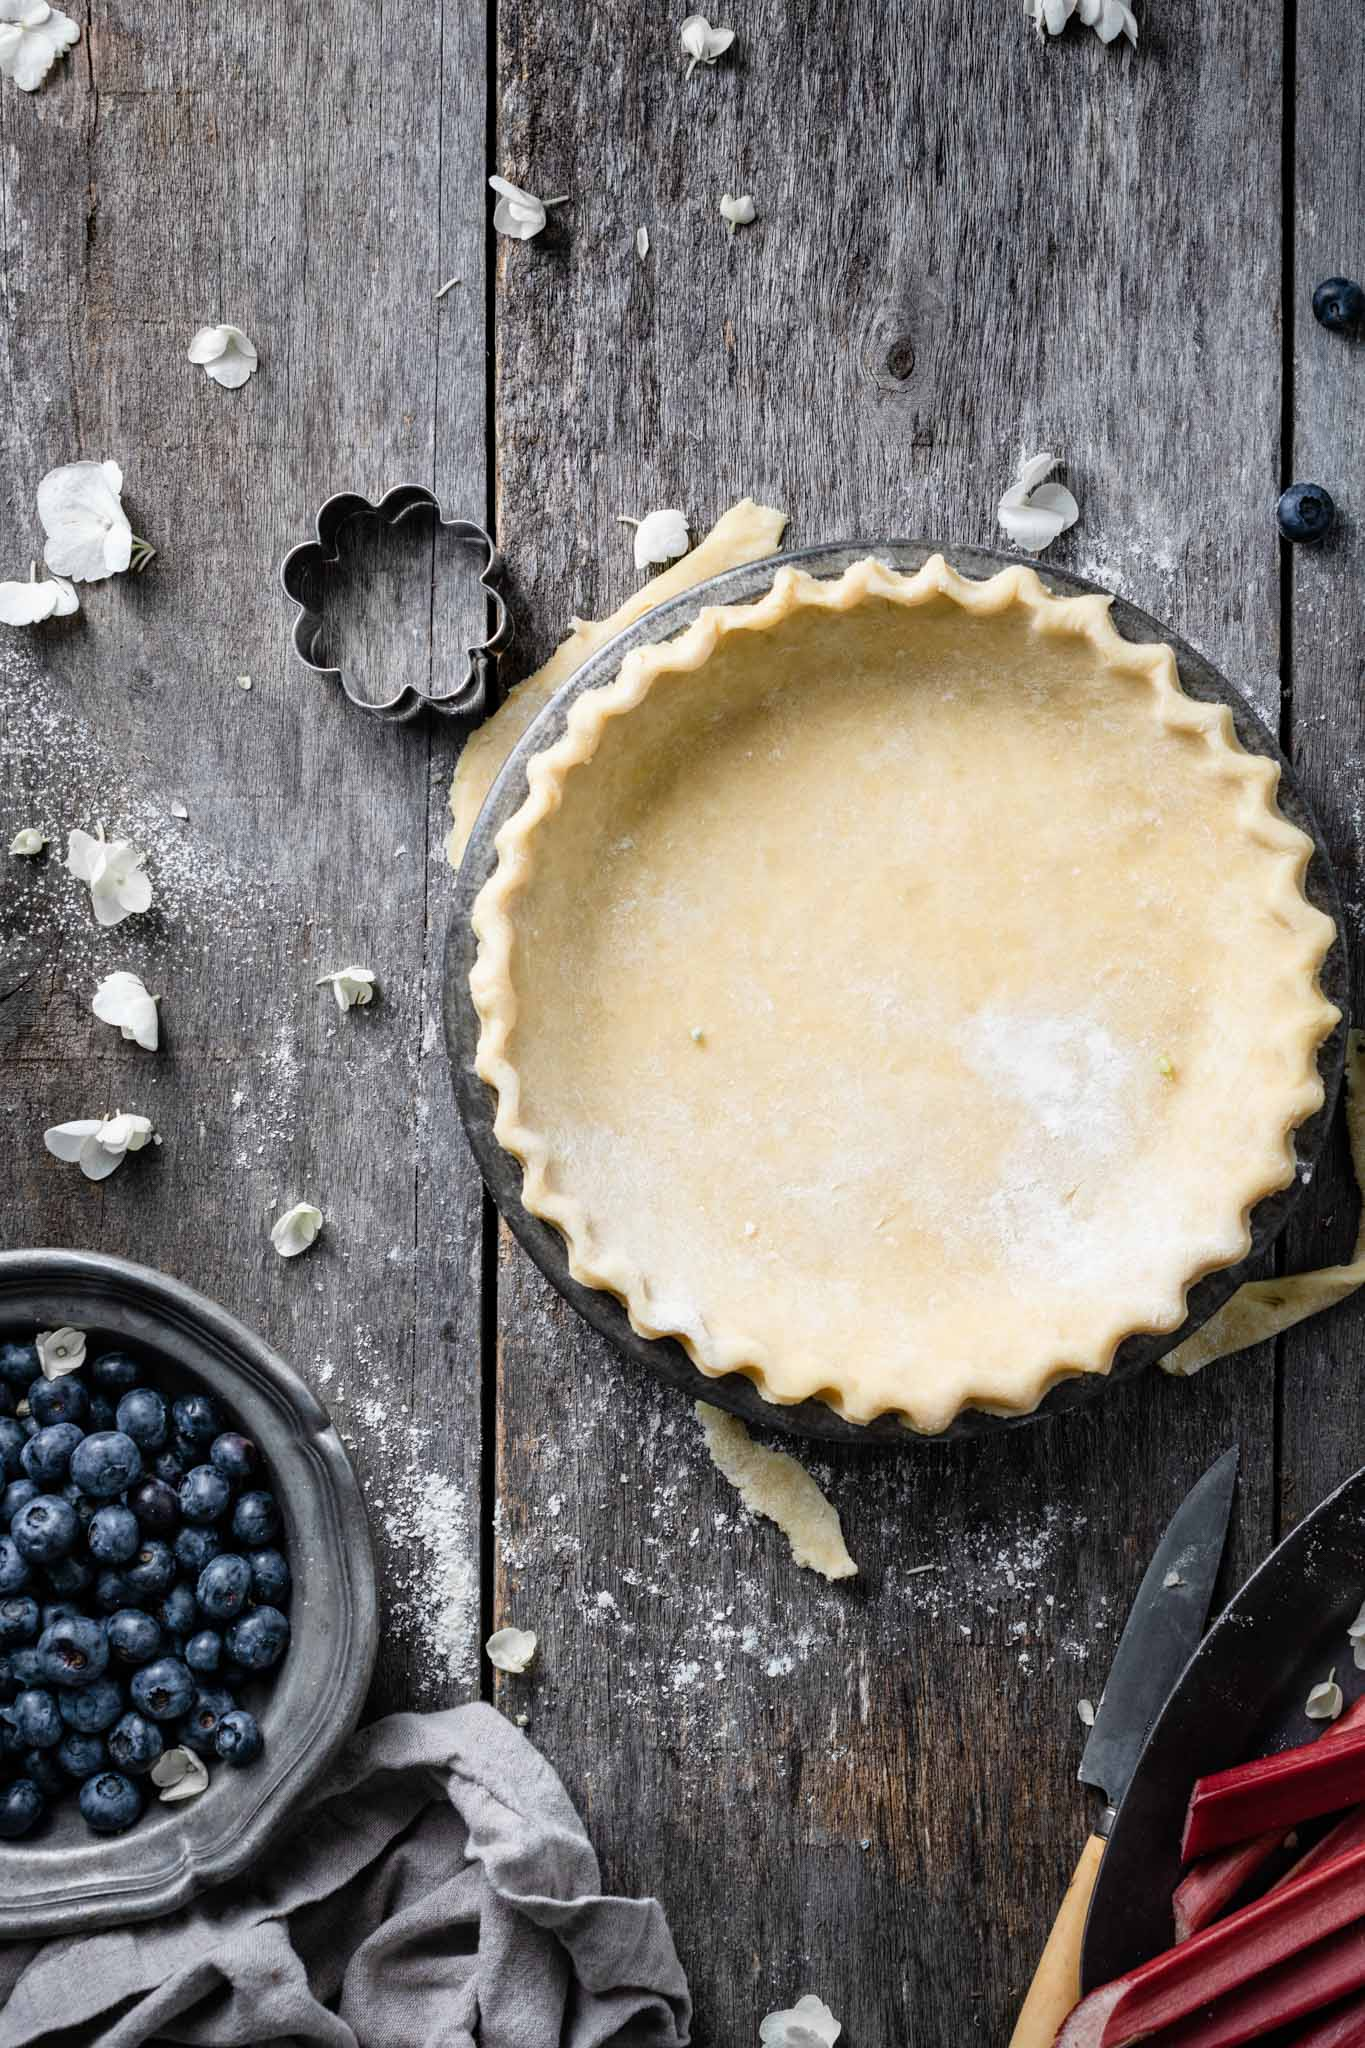 Recipe for homemade pie crust.